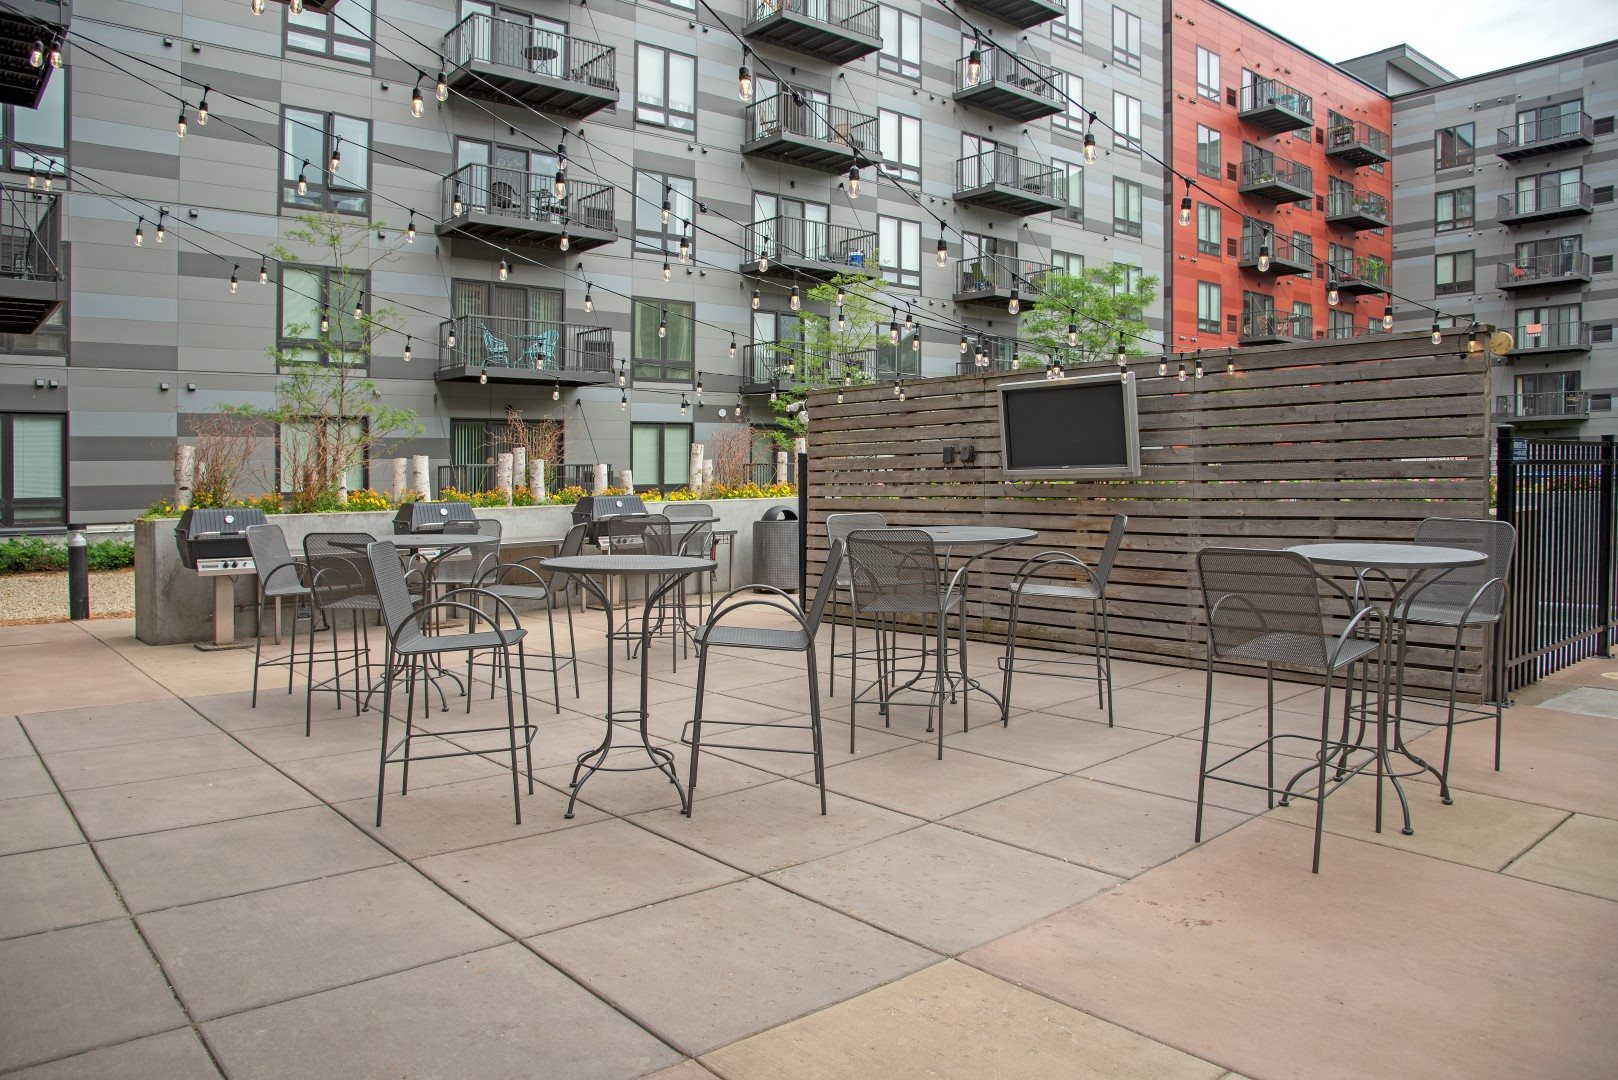 Patios Perfect For Social Events at Third North, Minnesota, 55401